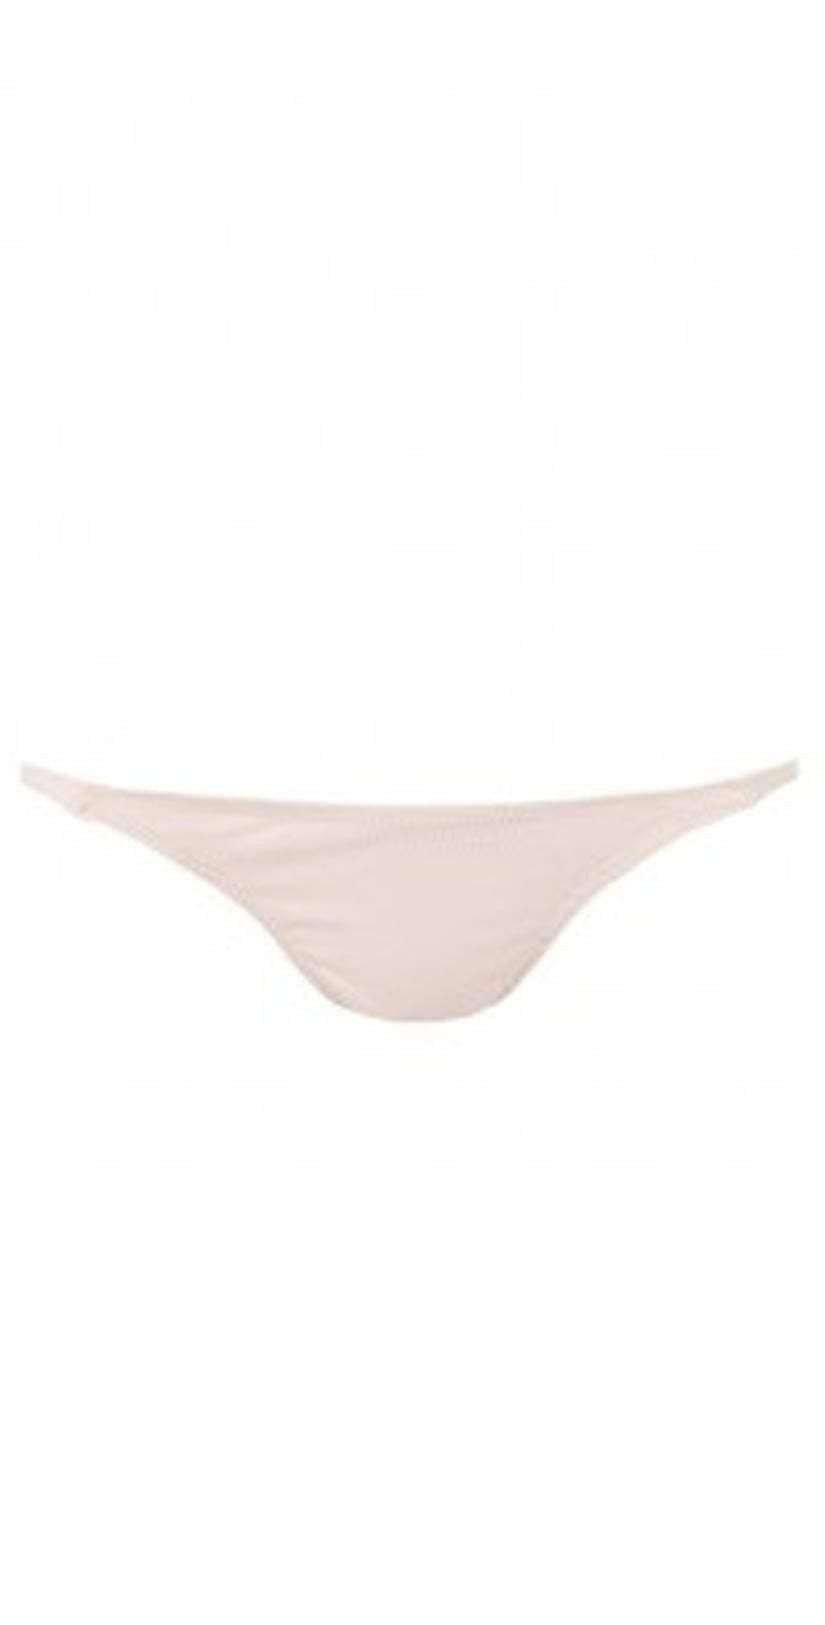 abff6ef6c4 Melissa Odabash Mexico Bottom in Blush – South Beach Swimsuits